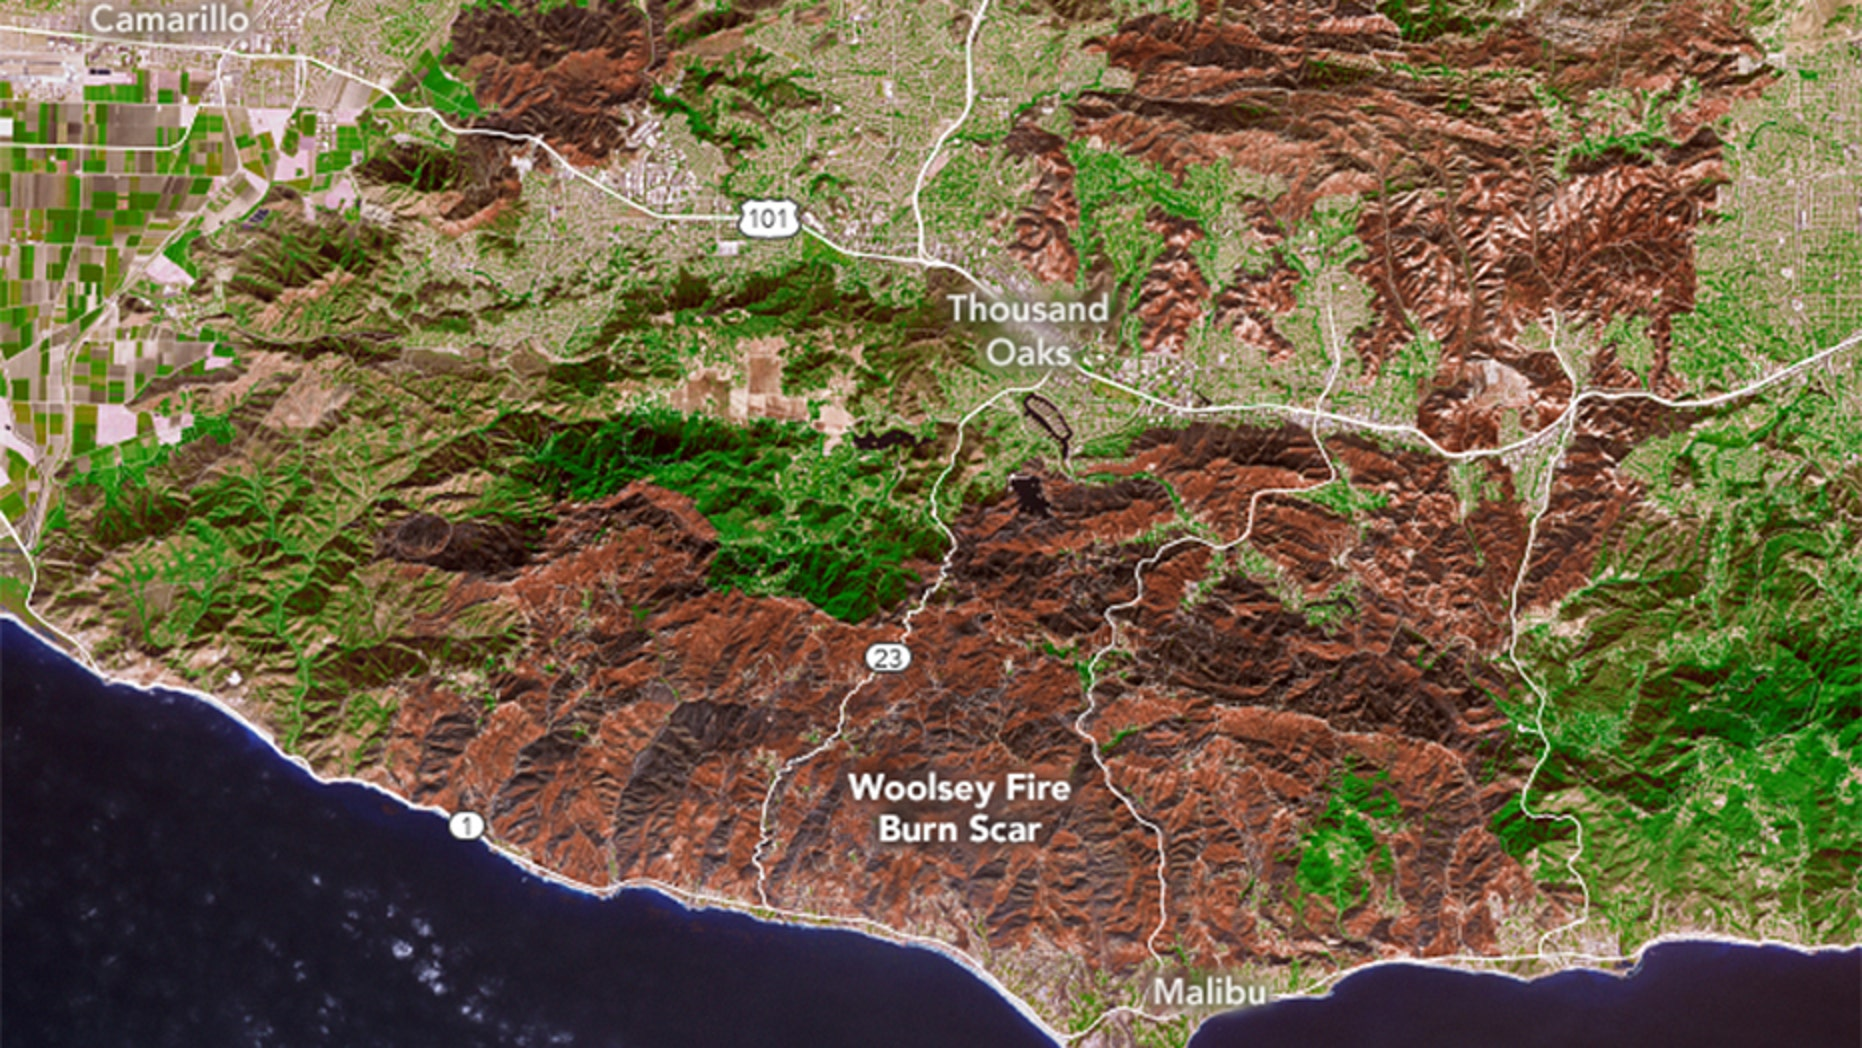 California wildfire satellite image shows extent of ... on entertainment map of california, earth map of california, detailed map of california, street view of california, atlas map of california, large map of california, topographic map of california, hotels of california, military map of california, humidity of california, wi-fi map of california, city of california, sky map of california, forecast of california, travel of california, food of california, education map of california, traffic map of california, aerial photograph of california, solar map of california,